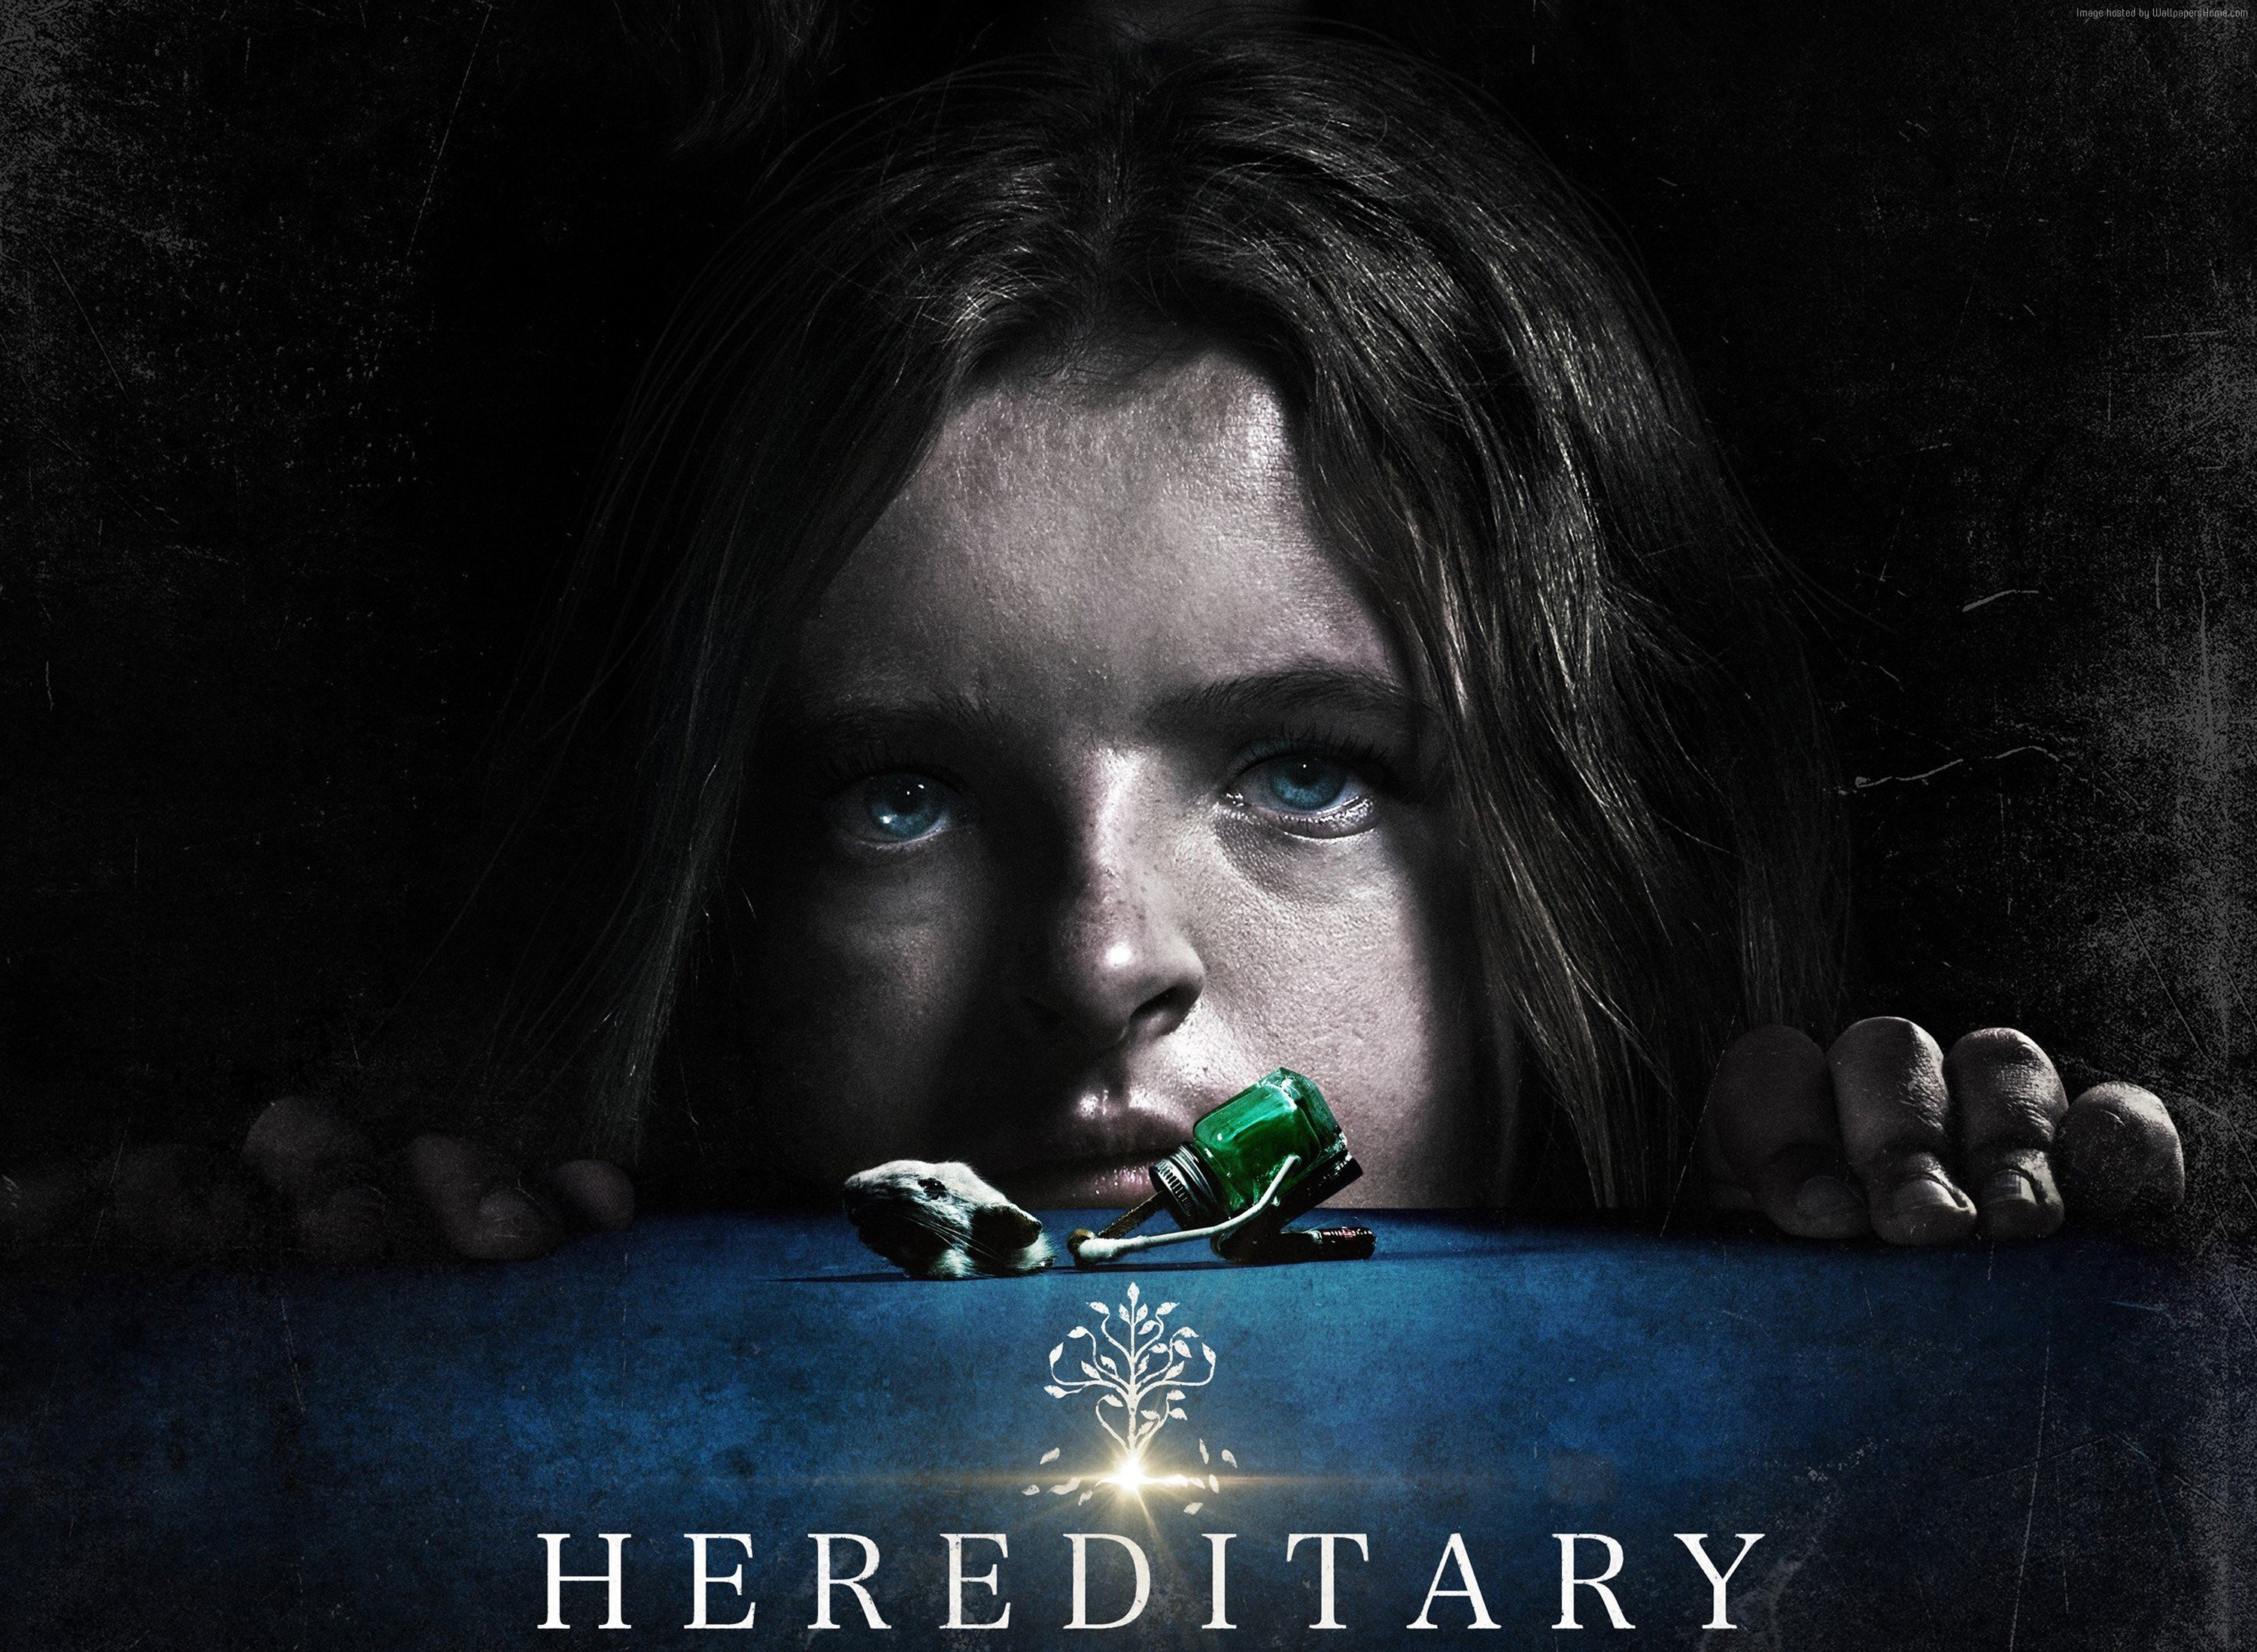 Movie Poster 2019: Hereditary 2018 Movie Poster, HD 4K Wallpaper